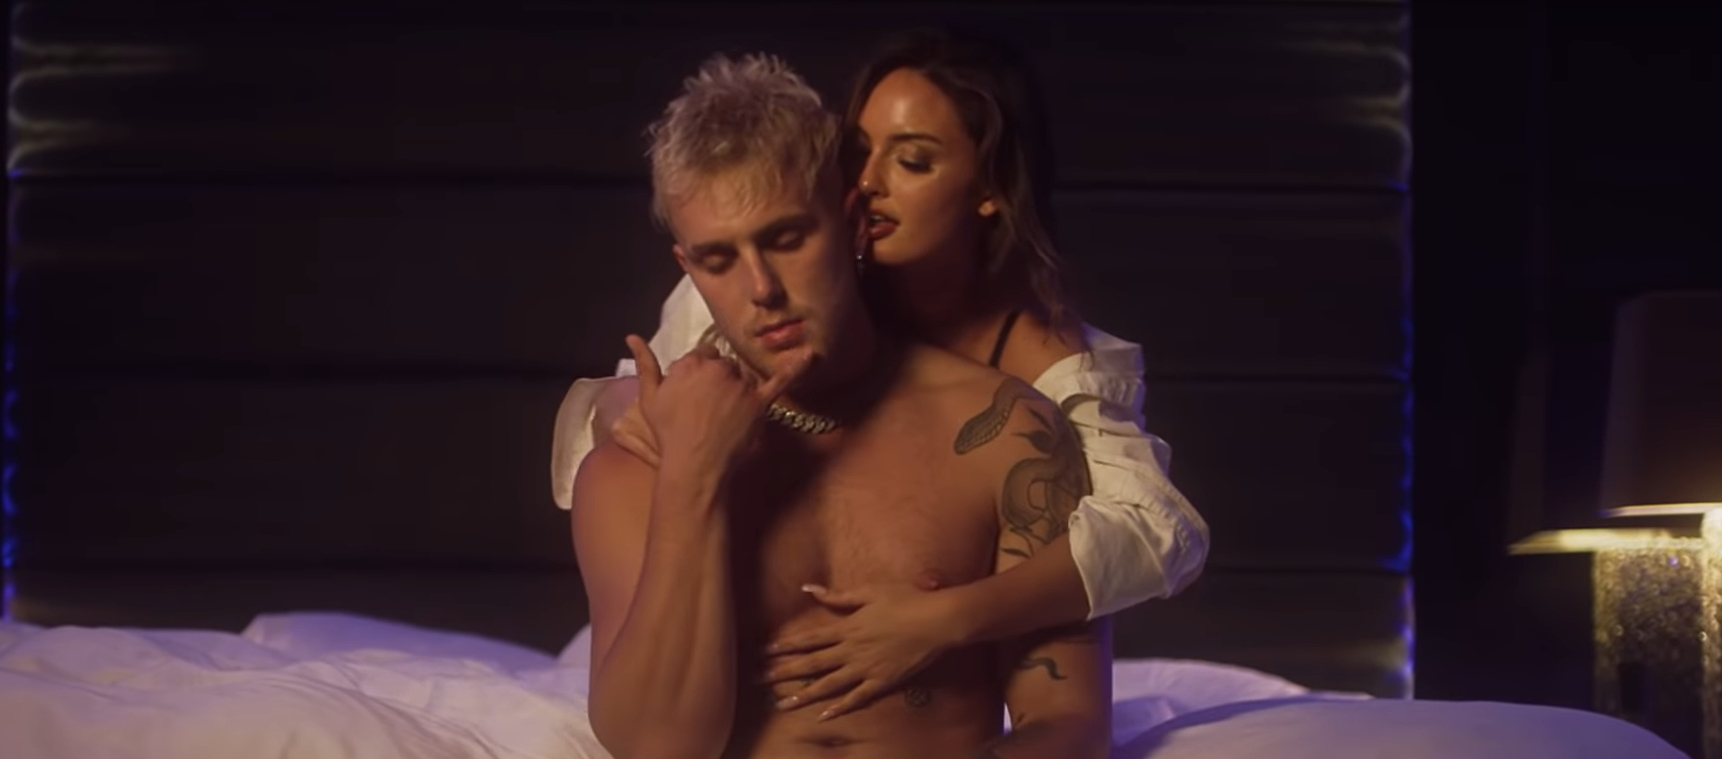 Are Julia Rose and Jake Paul the endgame?